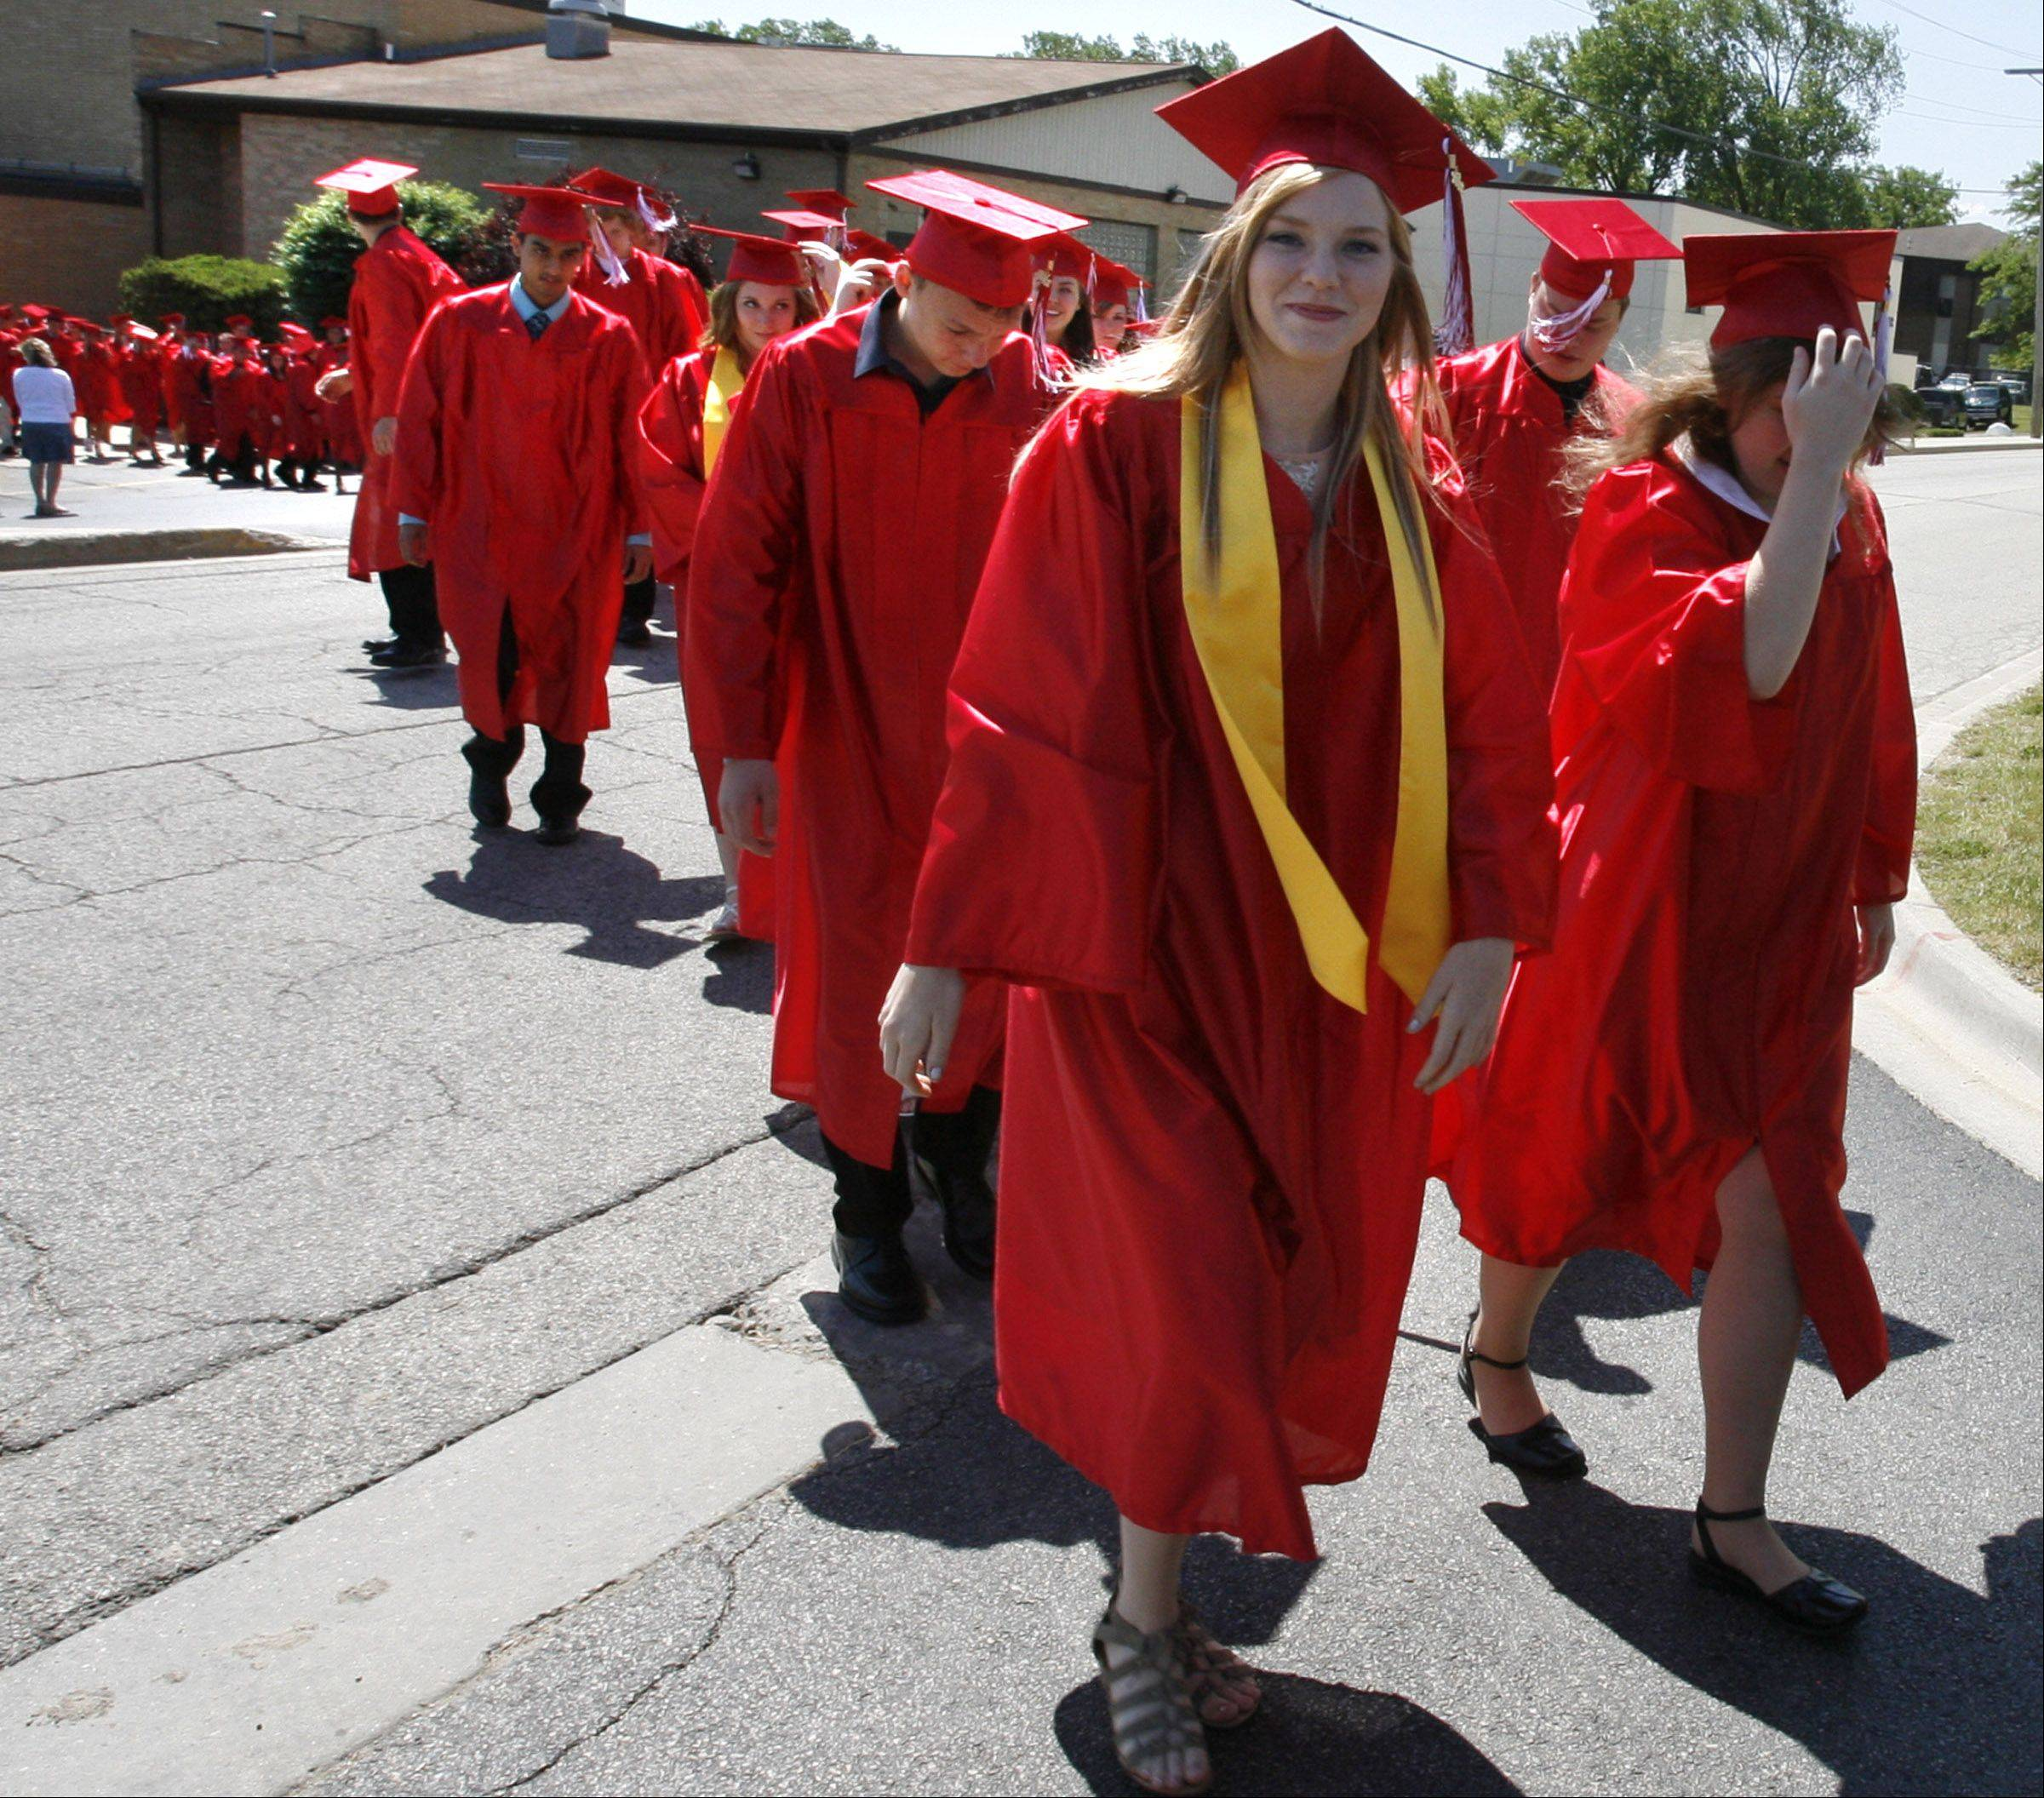 LoriBeth Achtor, left, and Kayla Boyd lead Grant High School graduates from across the street to the gym for the school's graduation on Saturday, June 2 in Fox Lake.